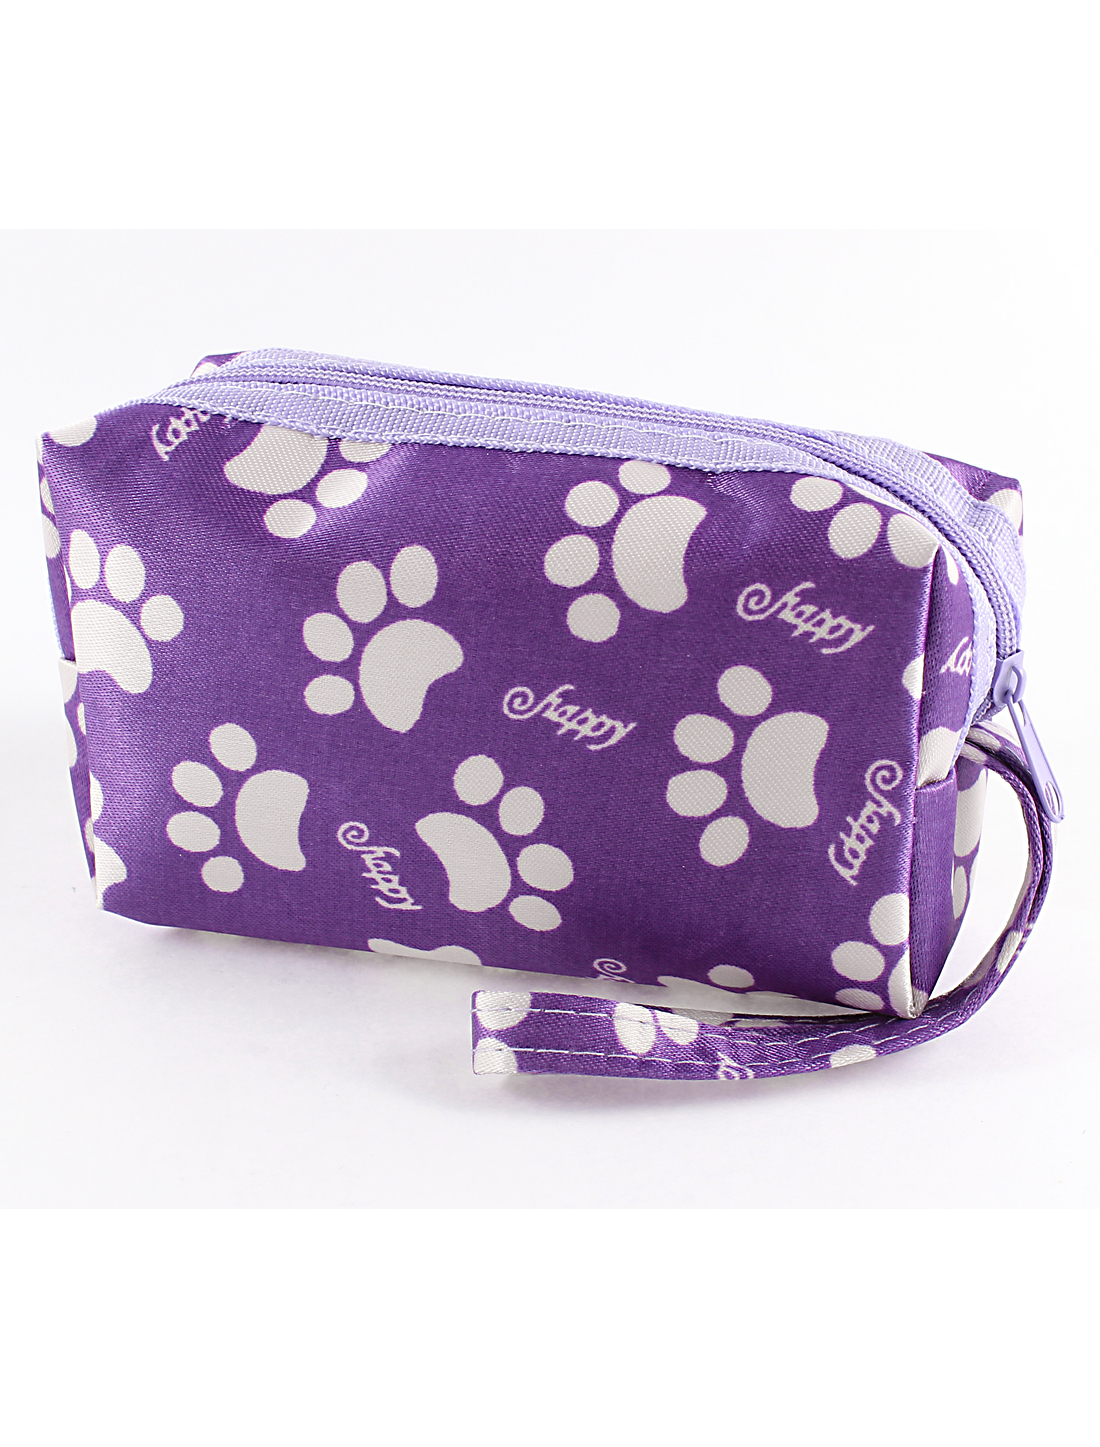 Purple White Paw Prints Hand Strap Zip Up Purse Bag Wristlet Coin Wallet Handbag for Lady